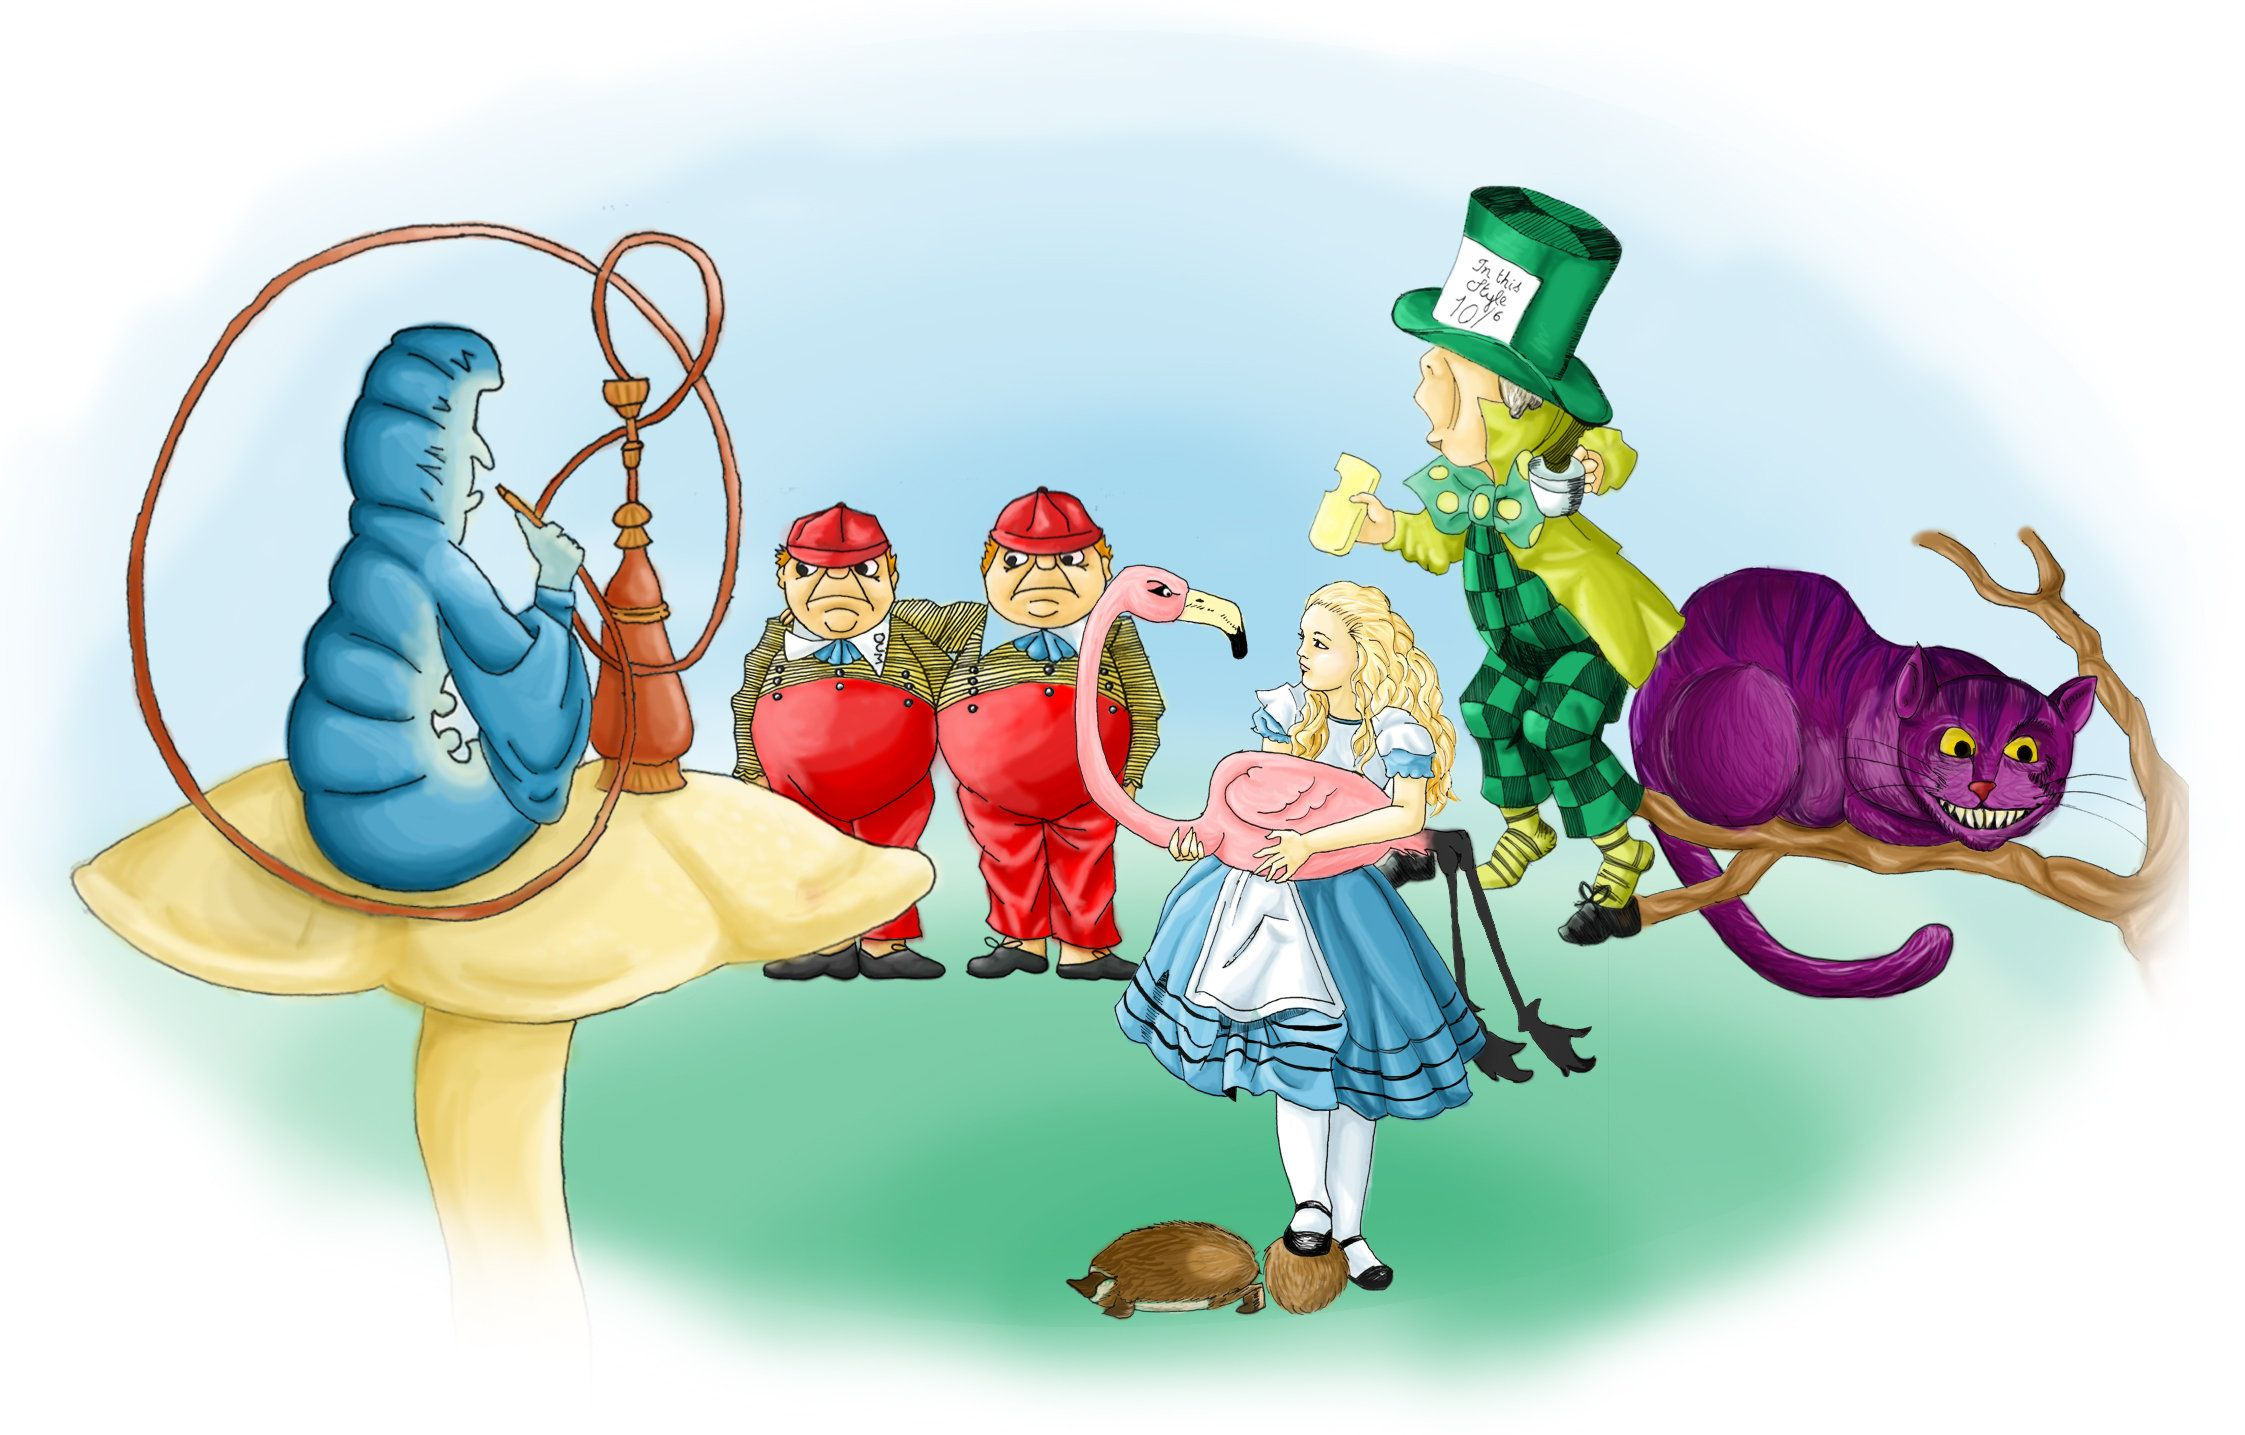 alice in wonderland google doodle | Alice in Wonderland ...